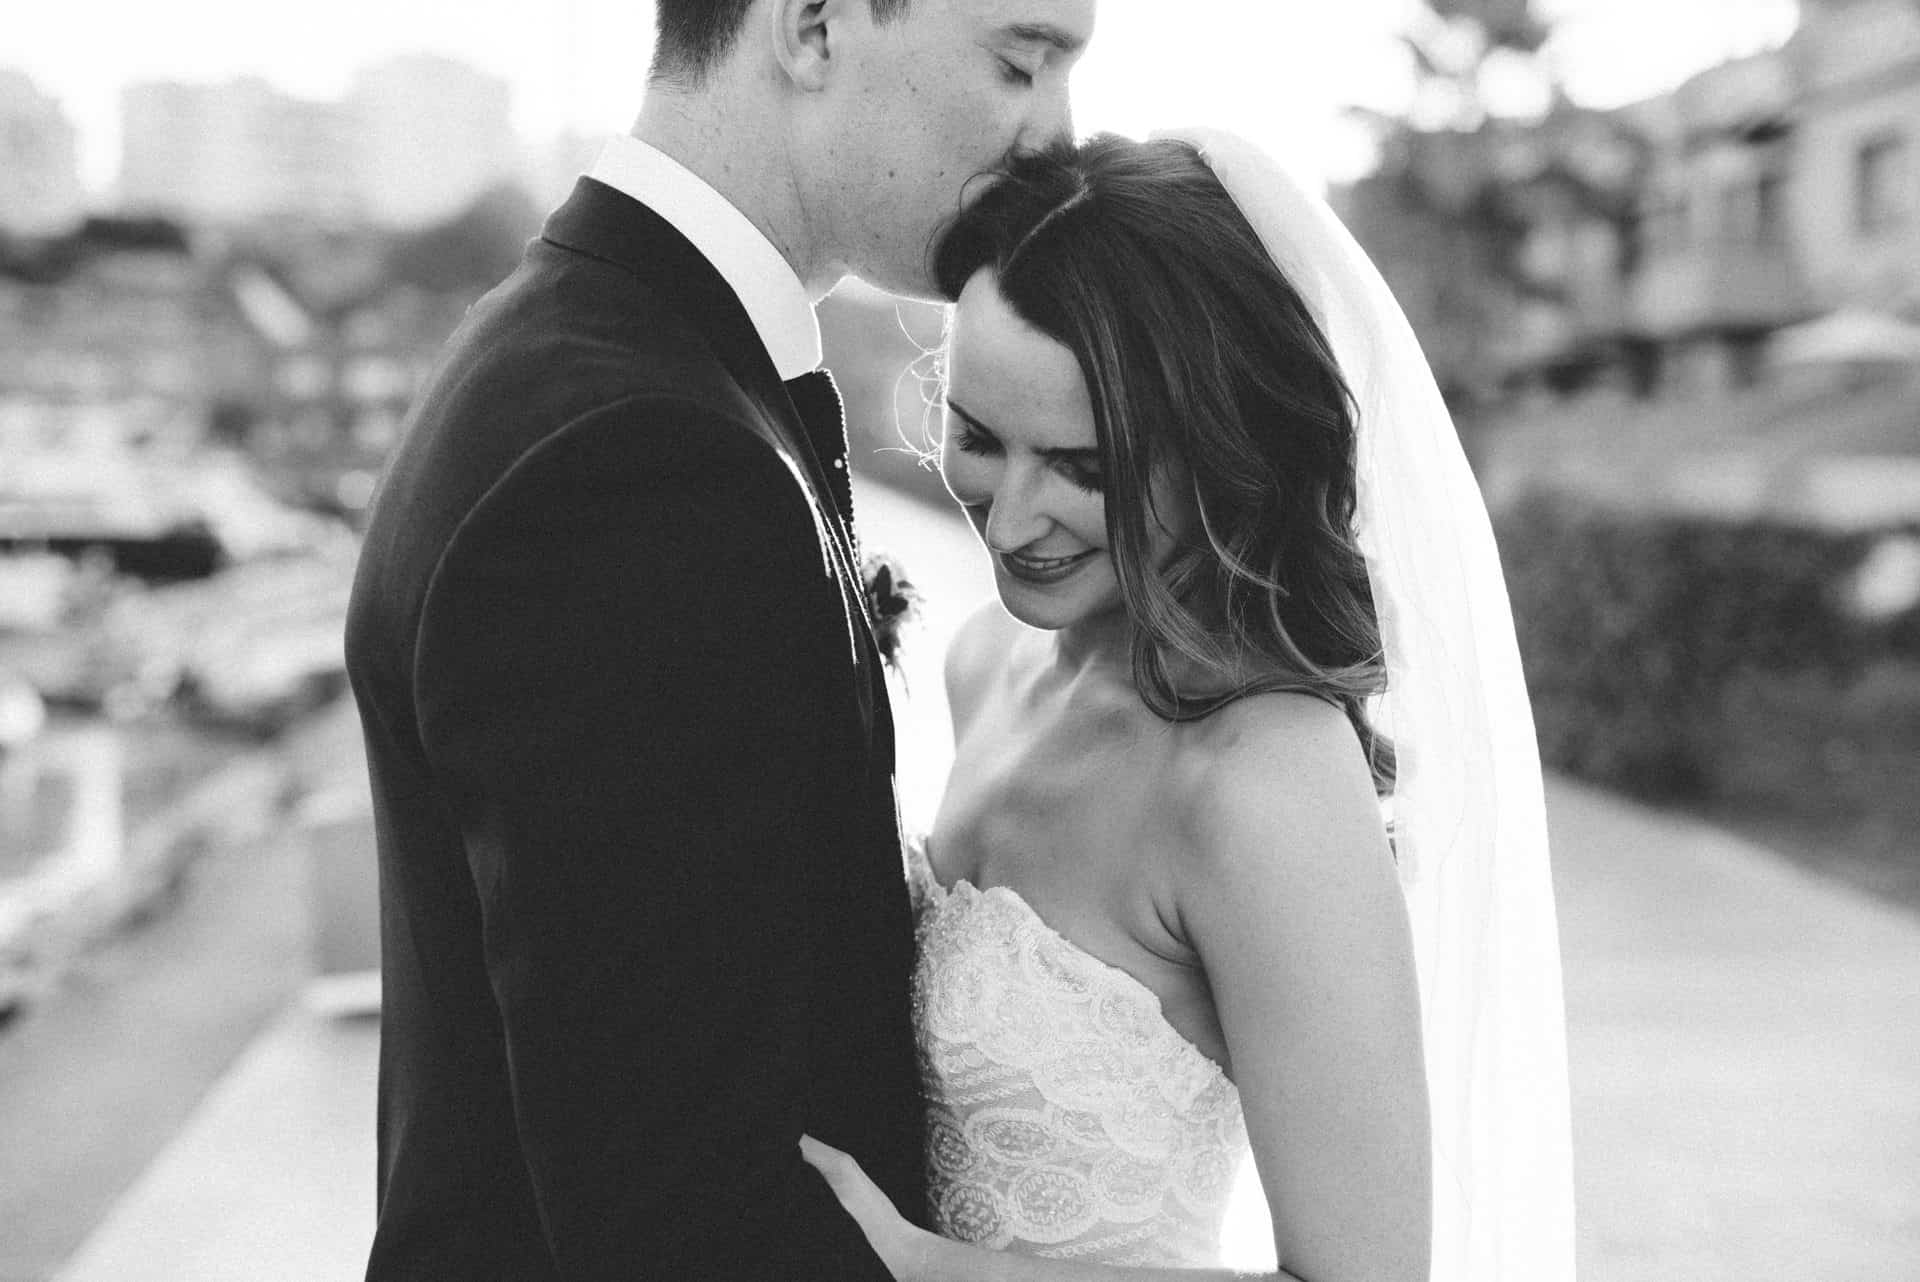 Best wedding images of the year (180 of 316)